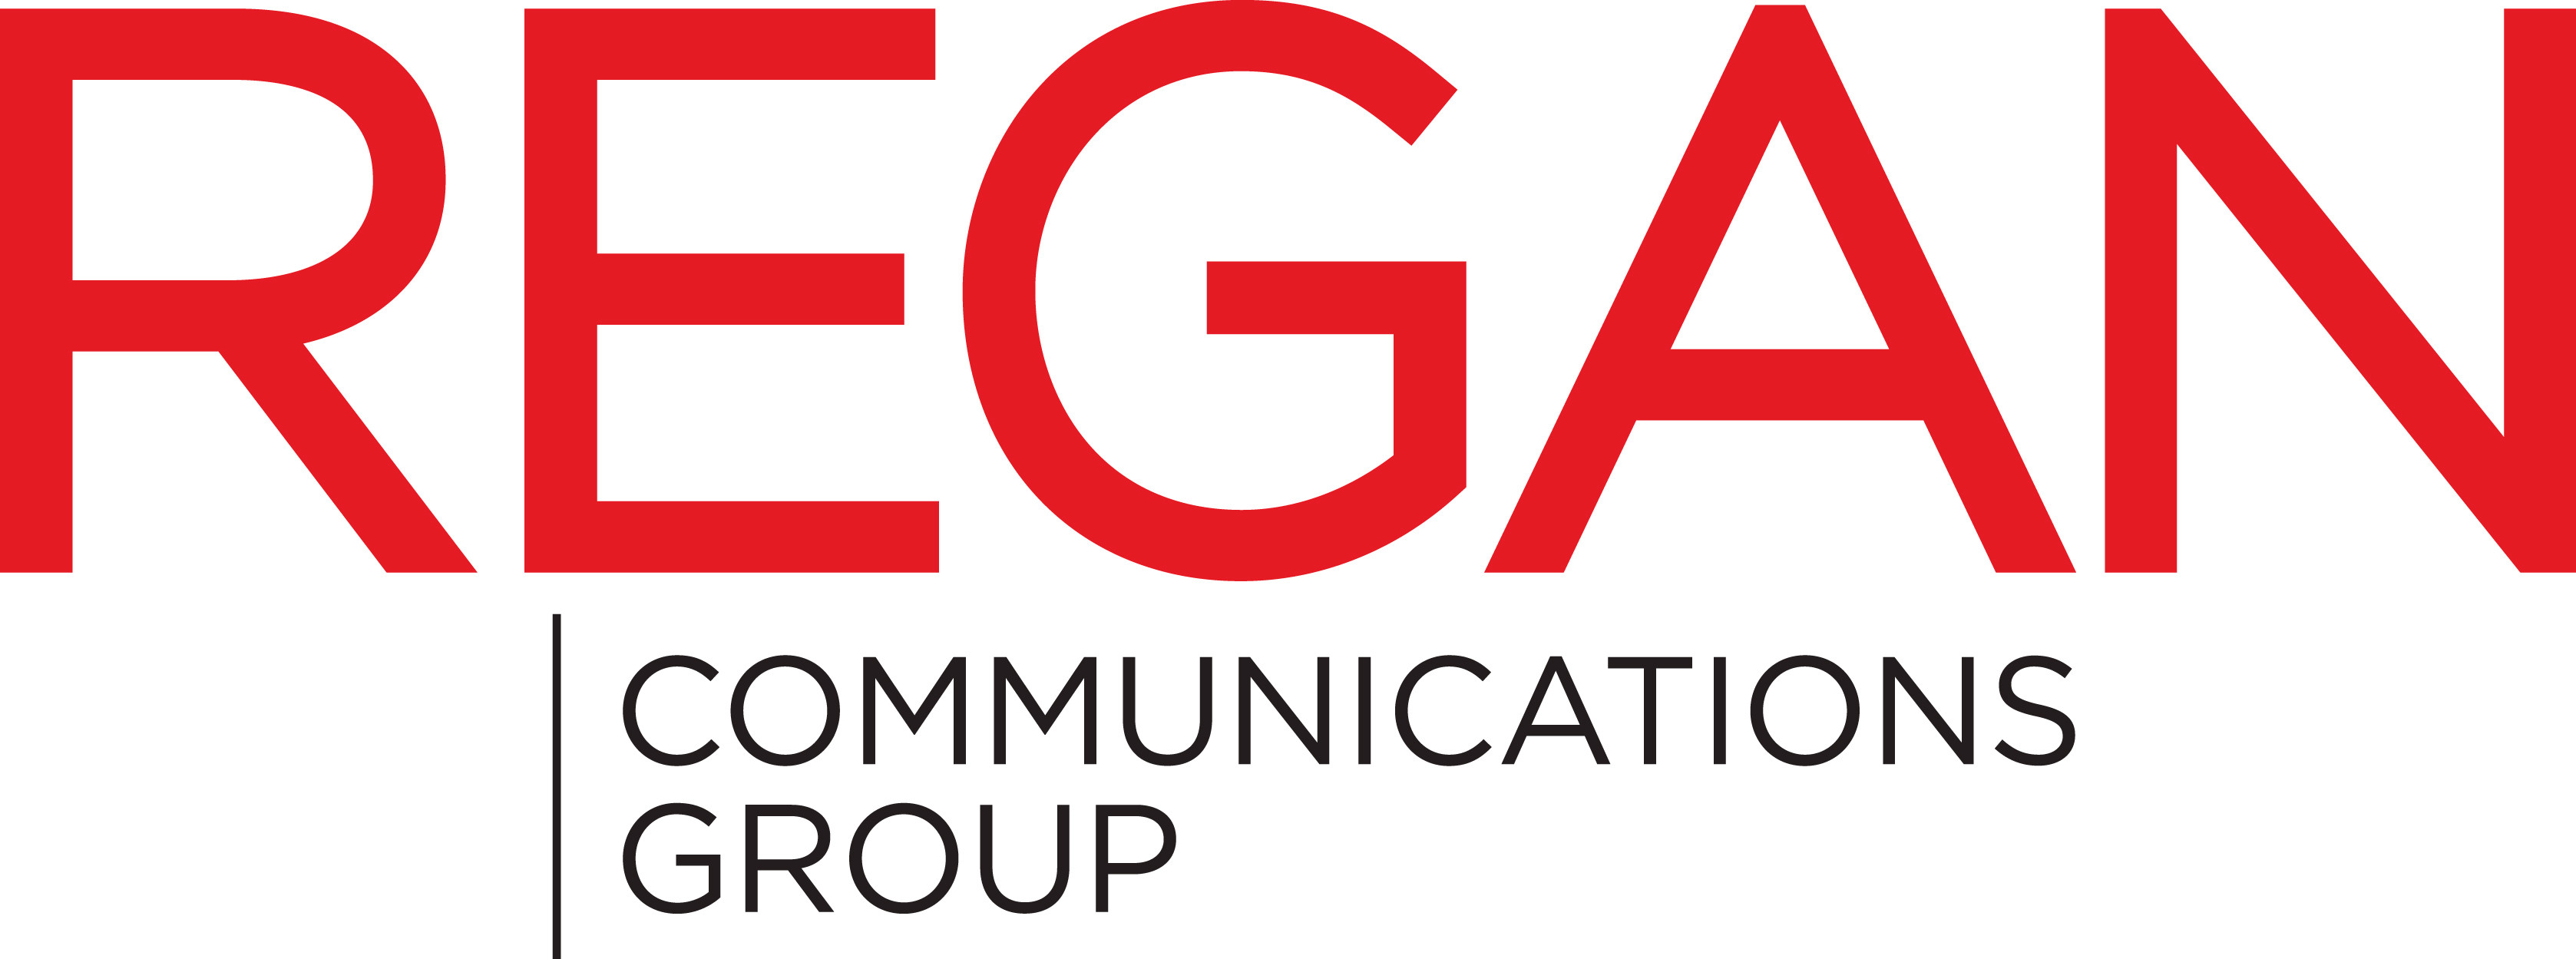 Best PR Firm Logo: Regan Communications Group